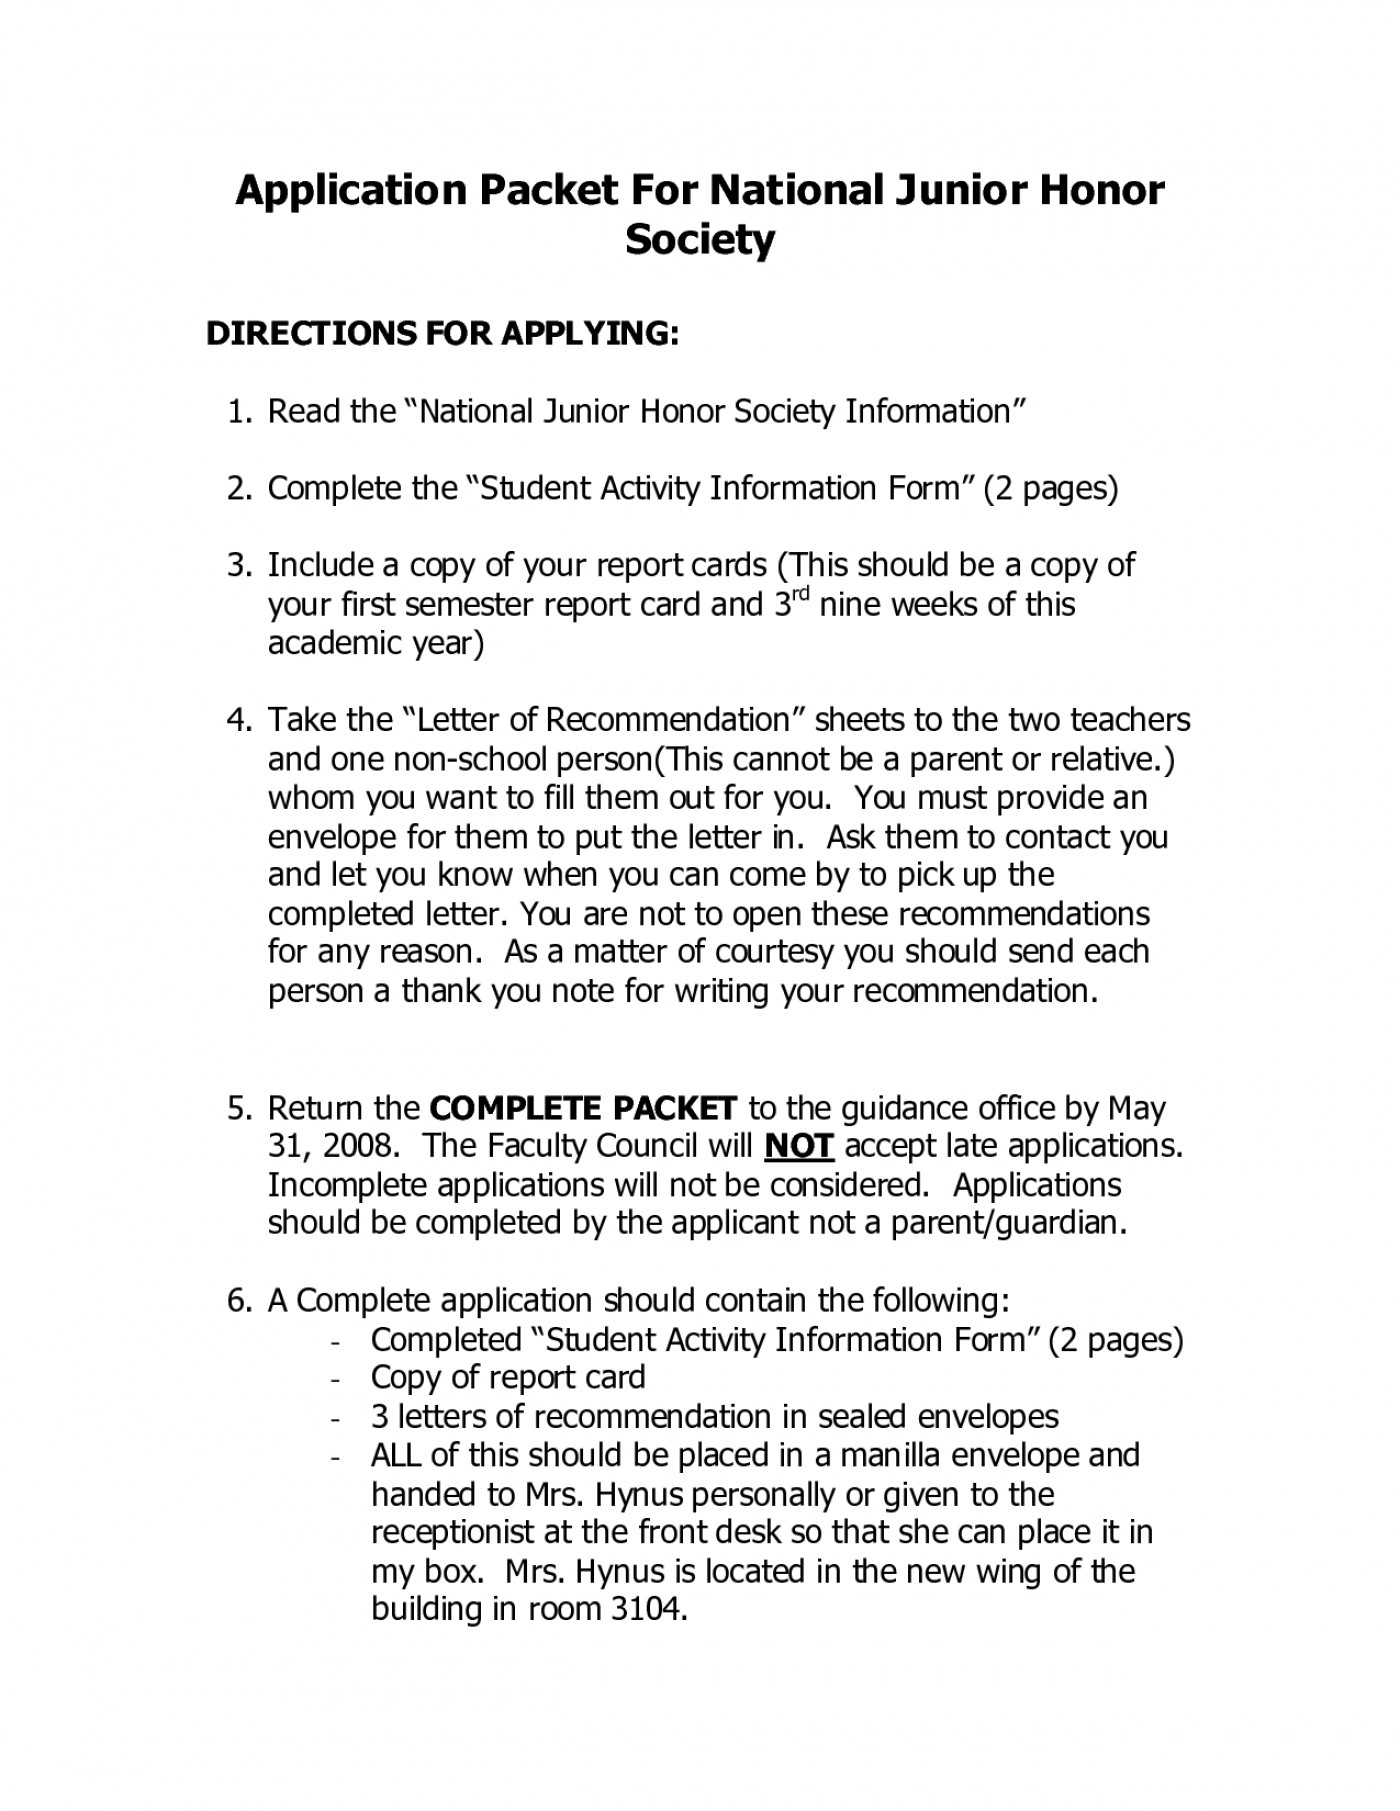 003 Application Essay National Junior Honor Society Conclusion Of To Example Unique Njhs 1400